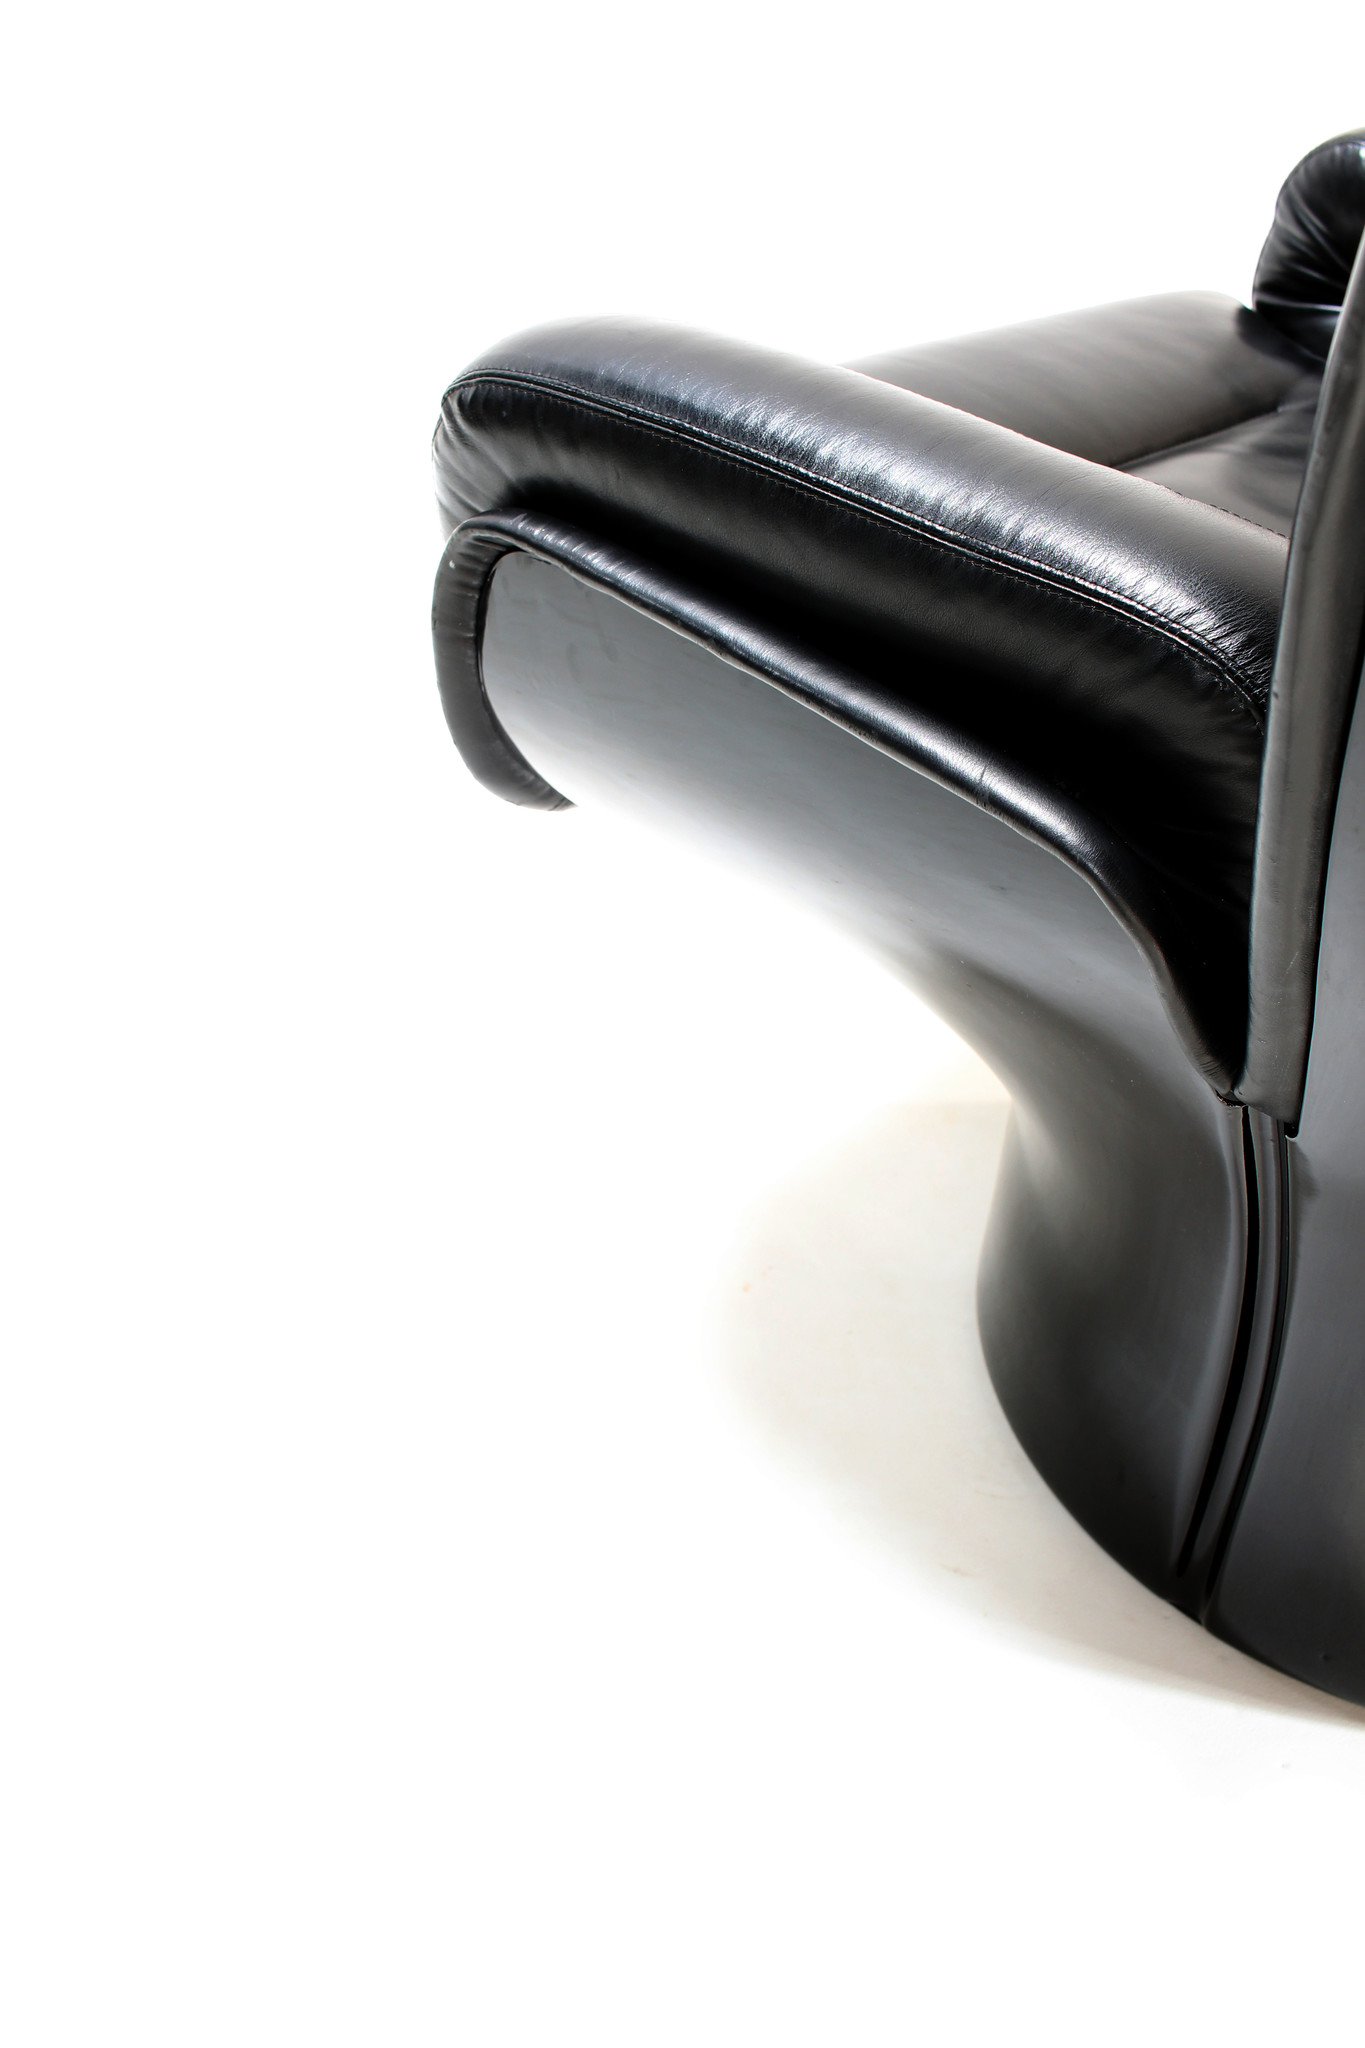 Rare Full Black Edition Elda Chair designed by Joe Colombo for Comfort, 1963